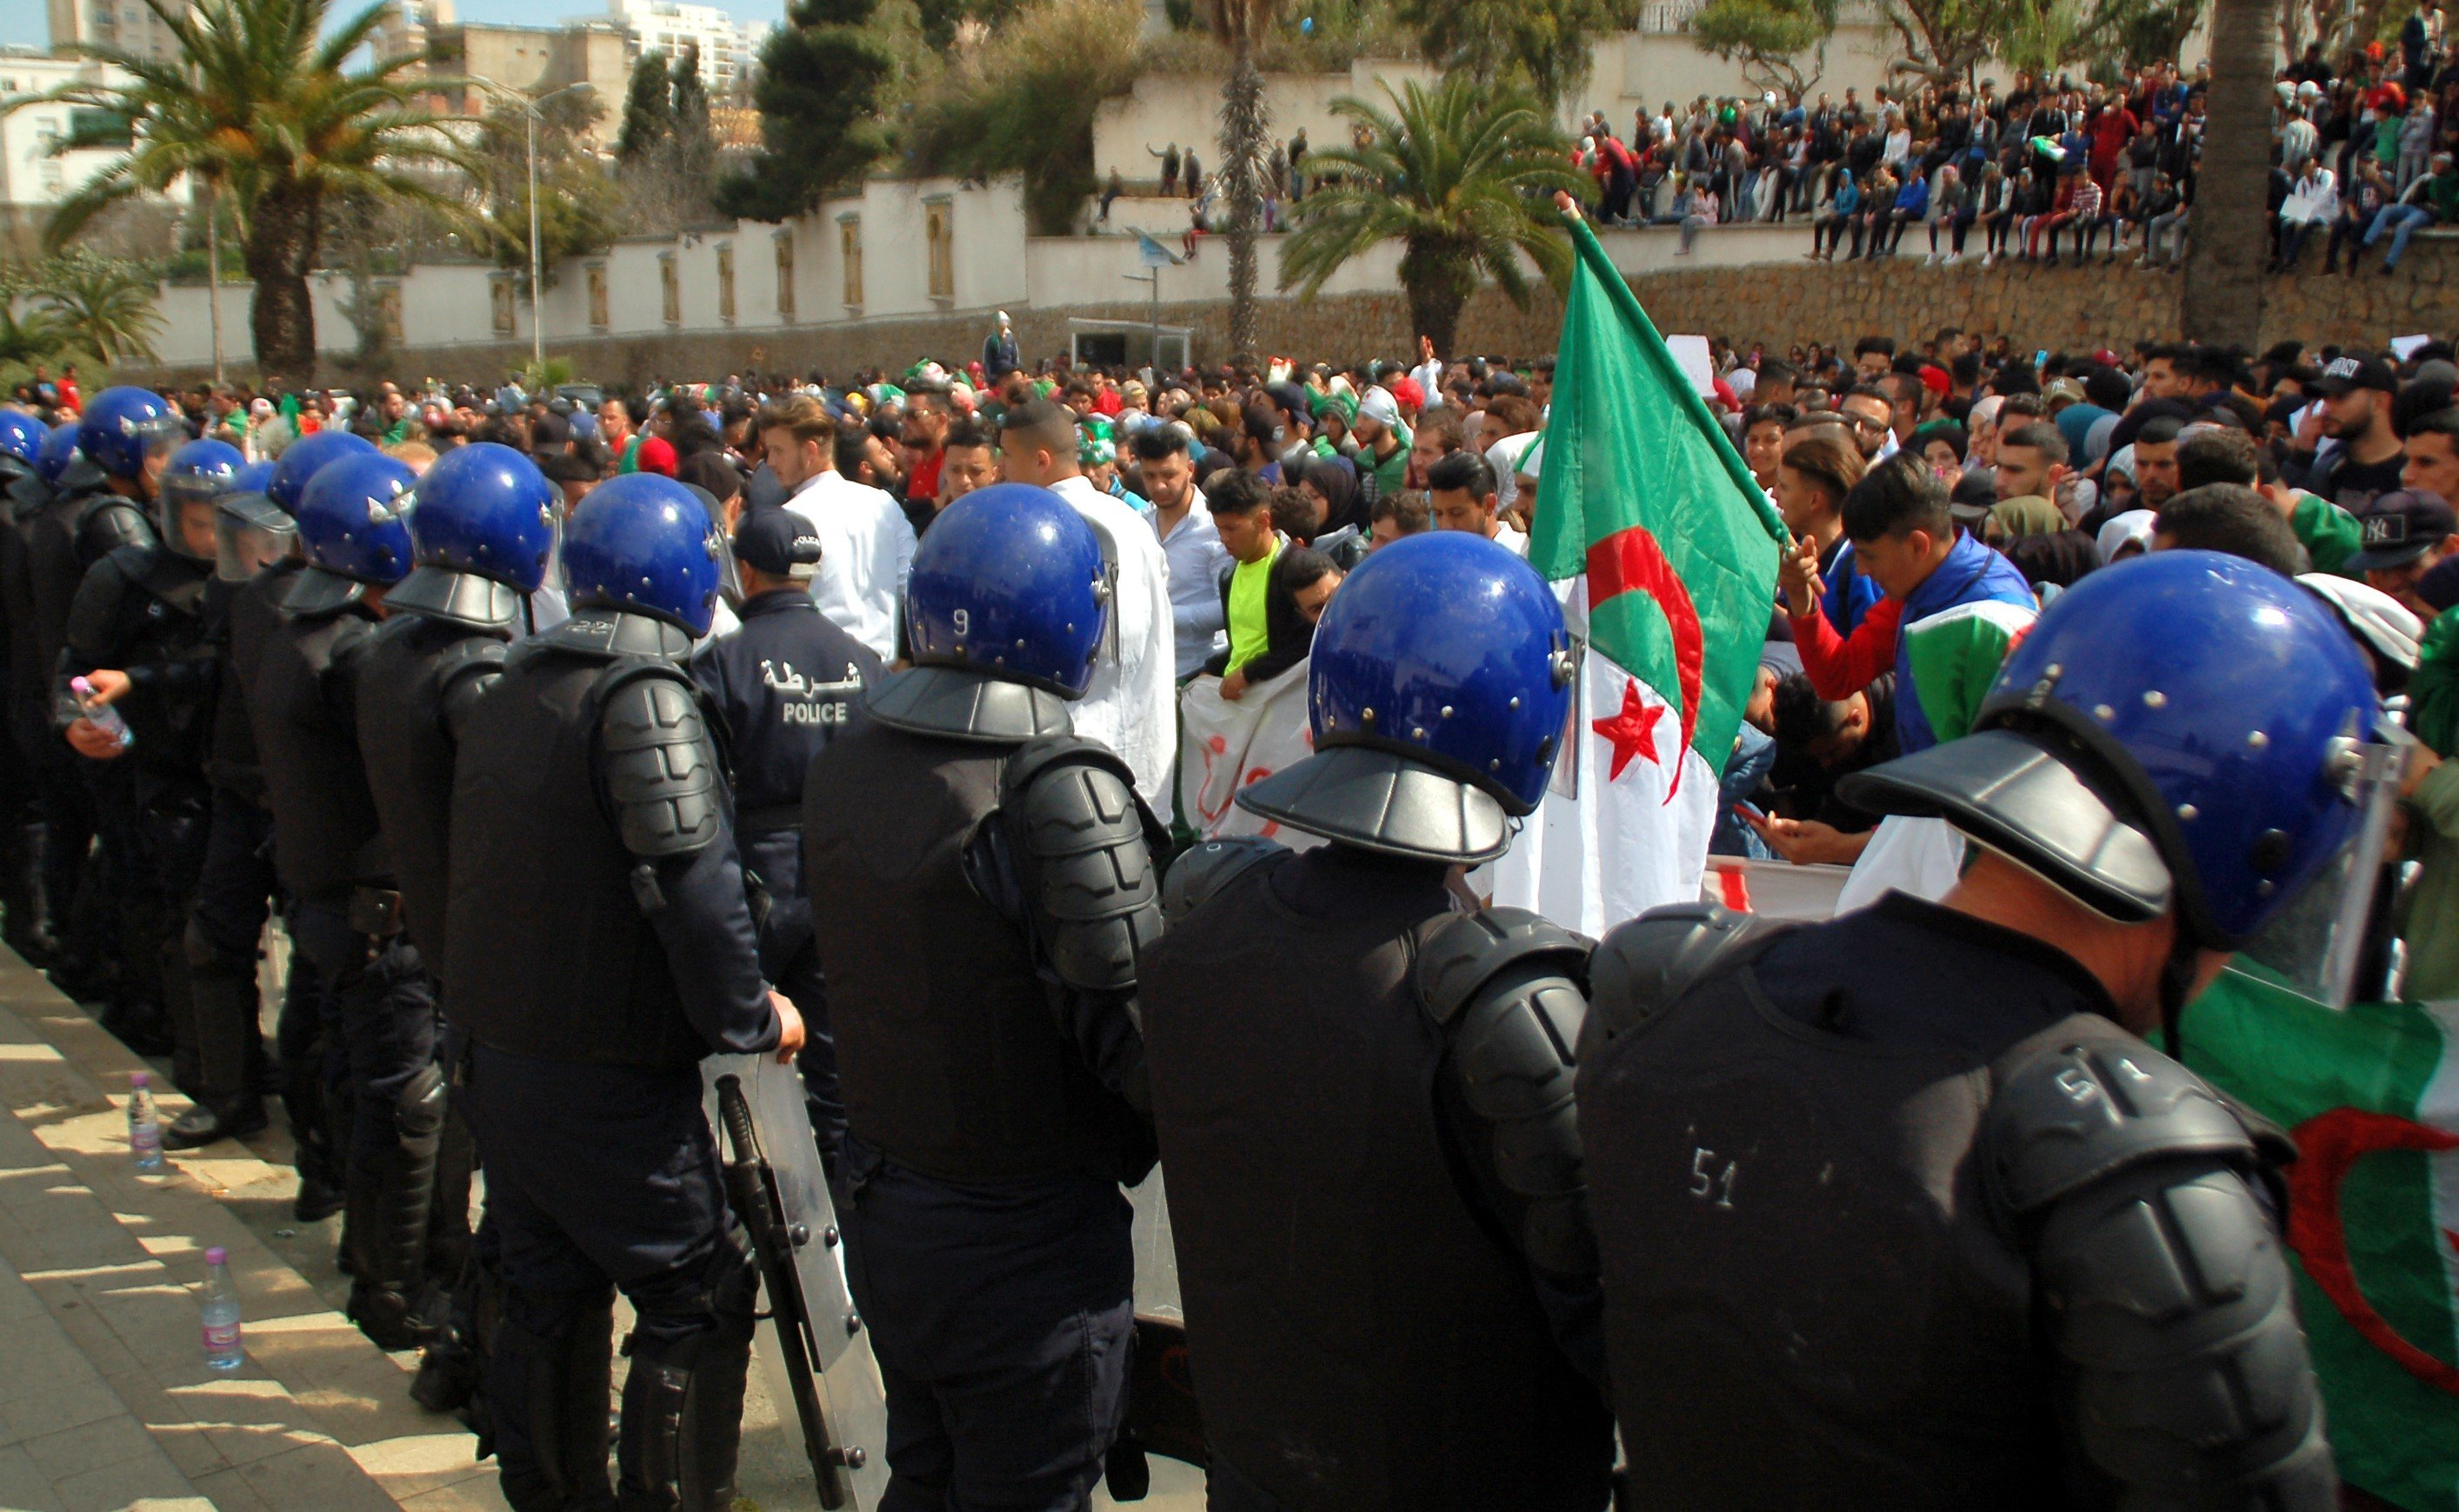 Algerian police stand guard during a protest in Oran on 5 March (AFP)